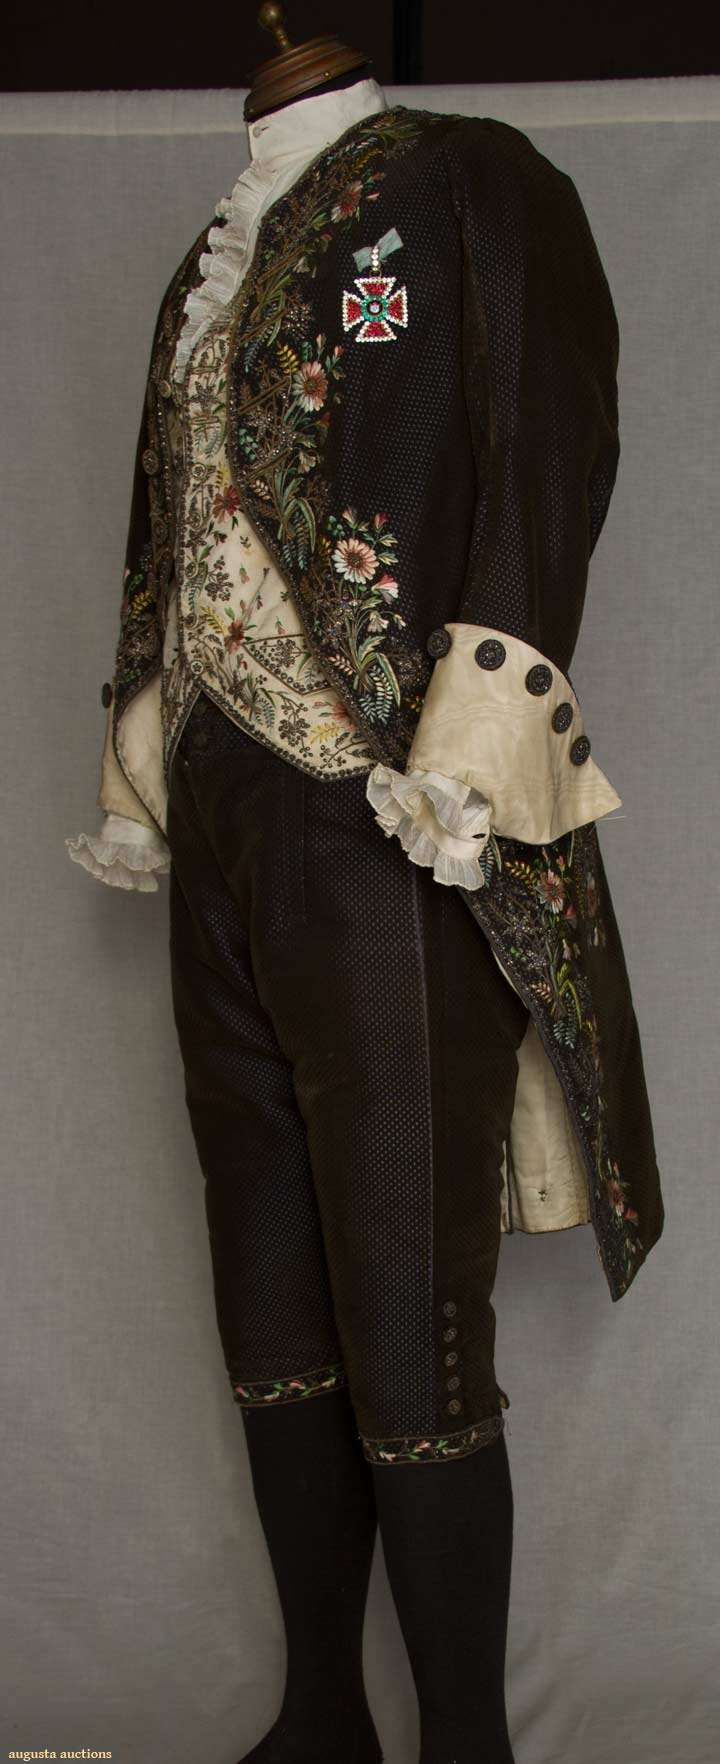 GENT'S FOUR PIECE FORMAL COURT SUIT, c. 1820. Coat & breeches of dark brown cut/uncut velvet to blue satin ground; coat embroidered in polychrome silk large scale florals, gold metallic cord & crimped foil flowers, 20th C. Maltese cross paste insignia coat collar & original cuffs removed.